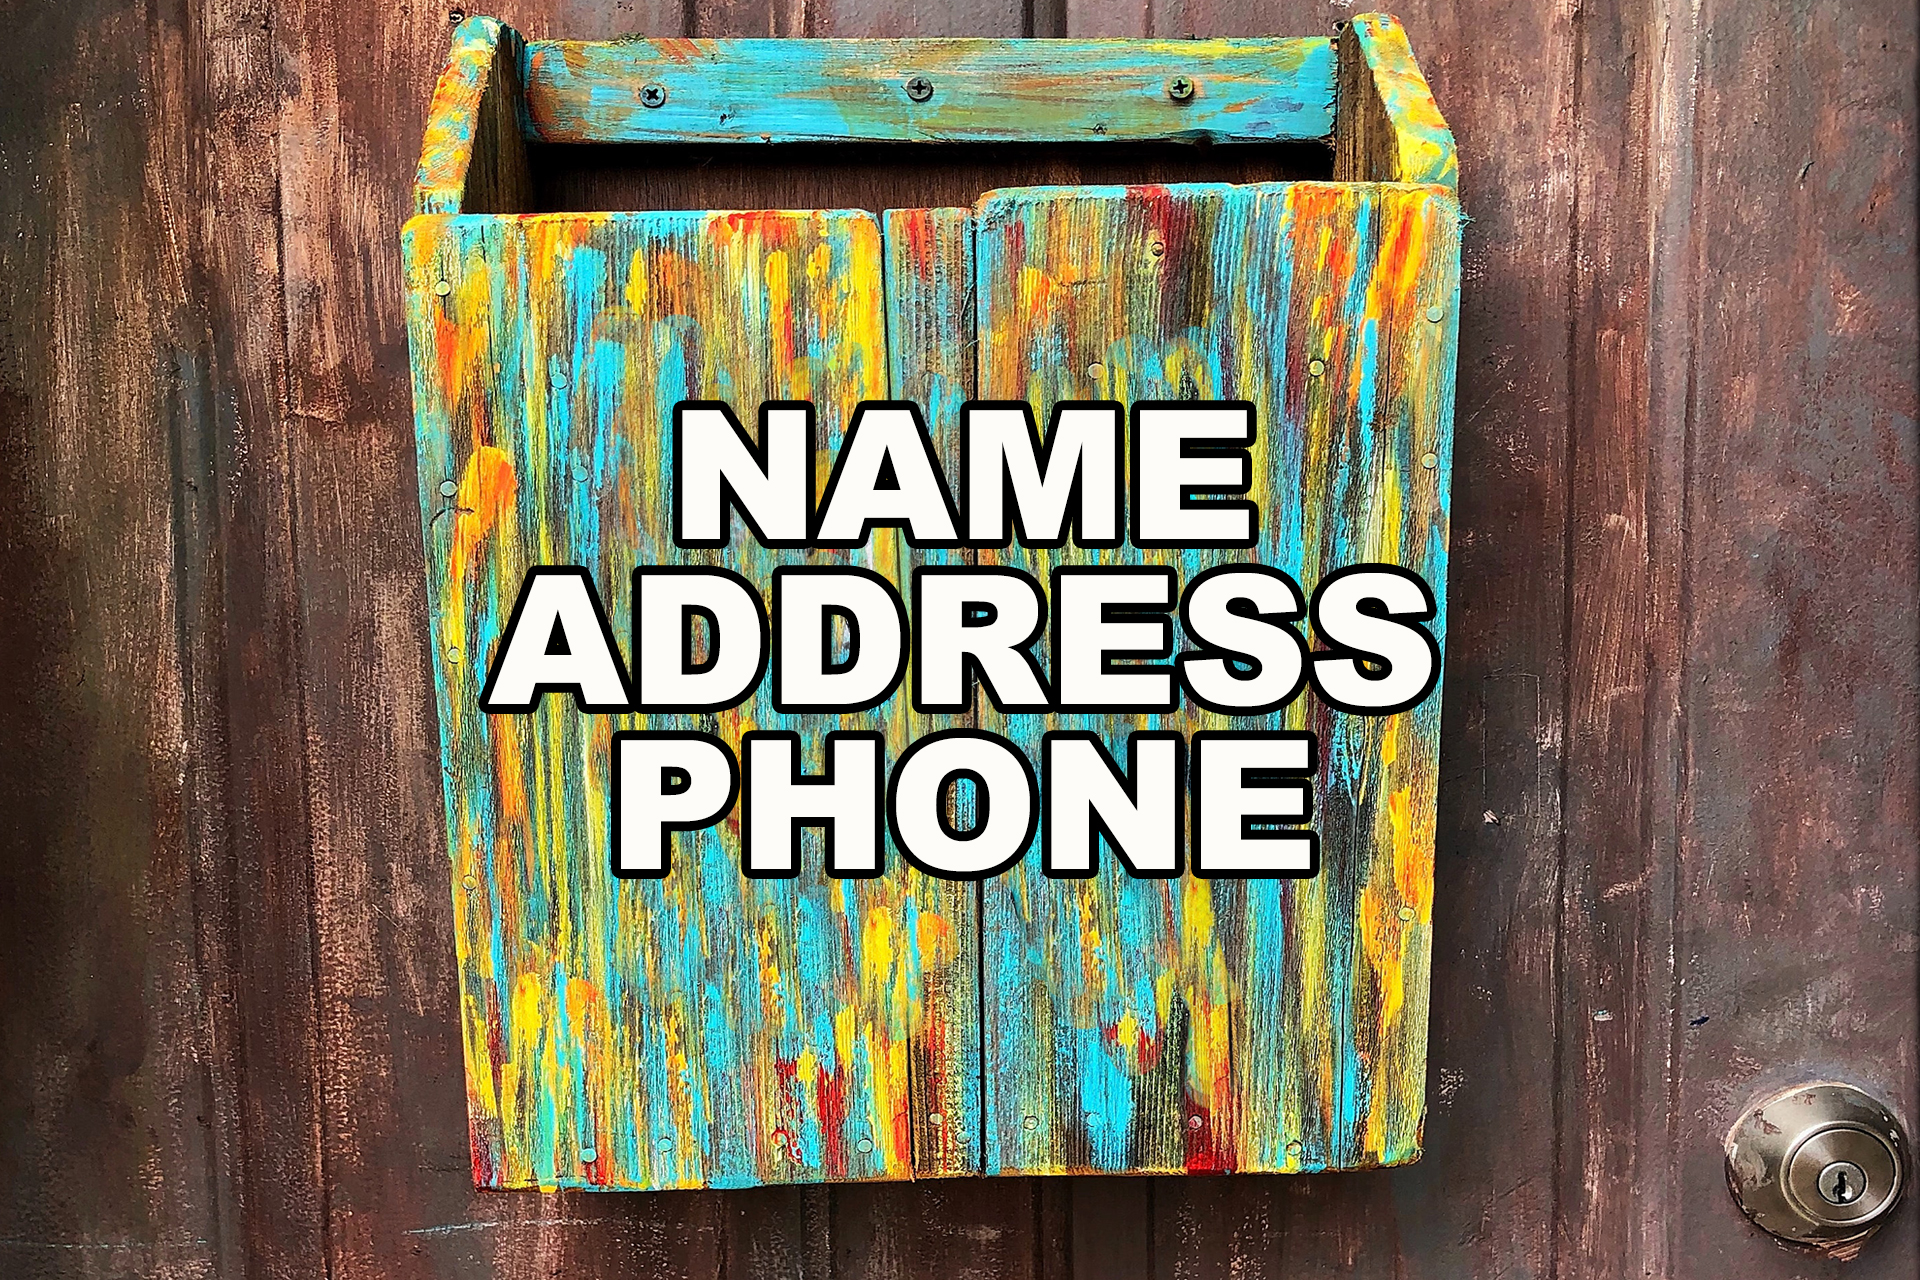 NAP (Name Address Phone)